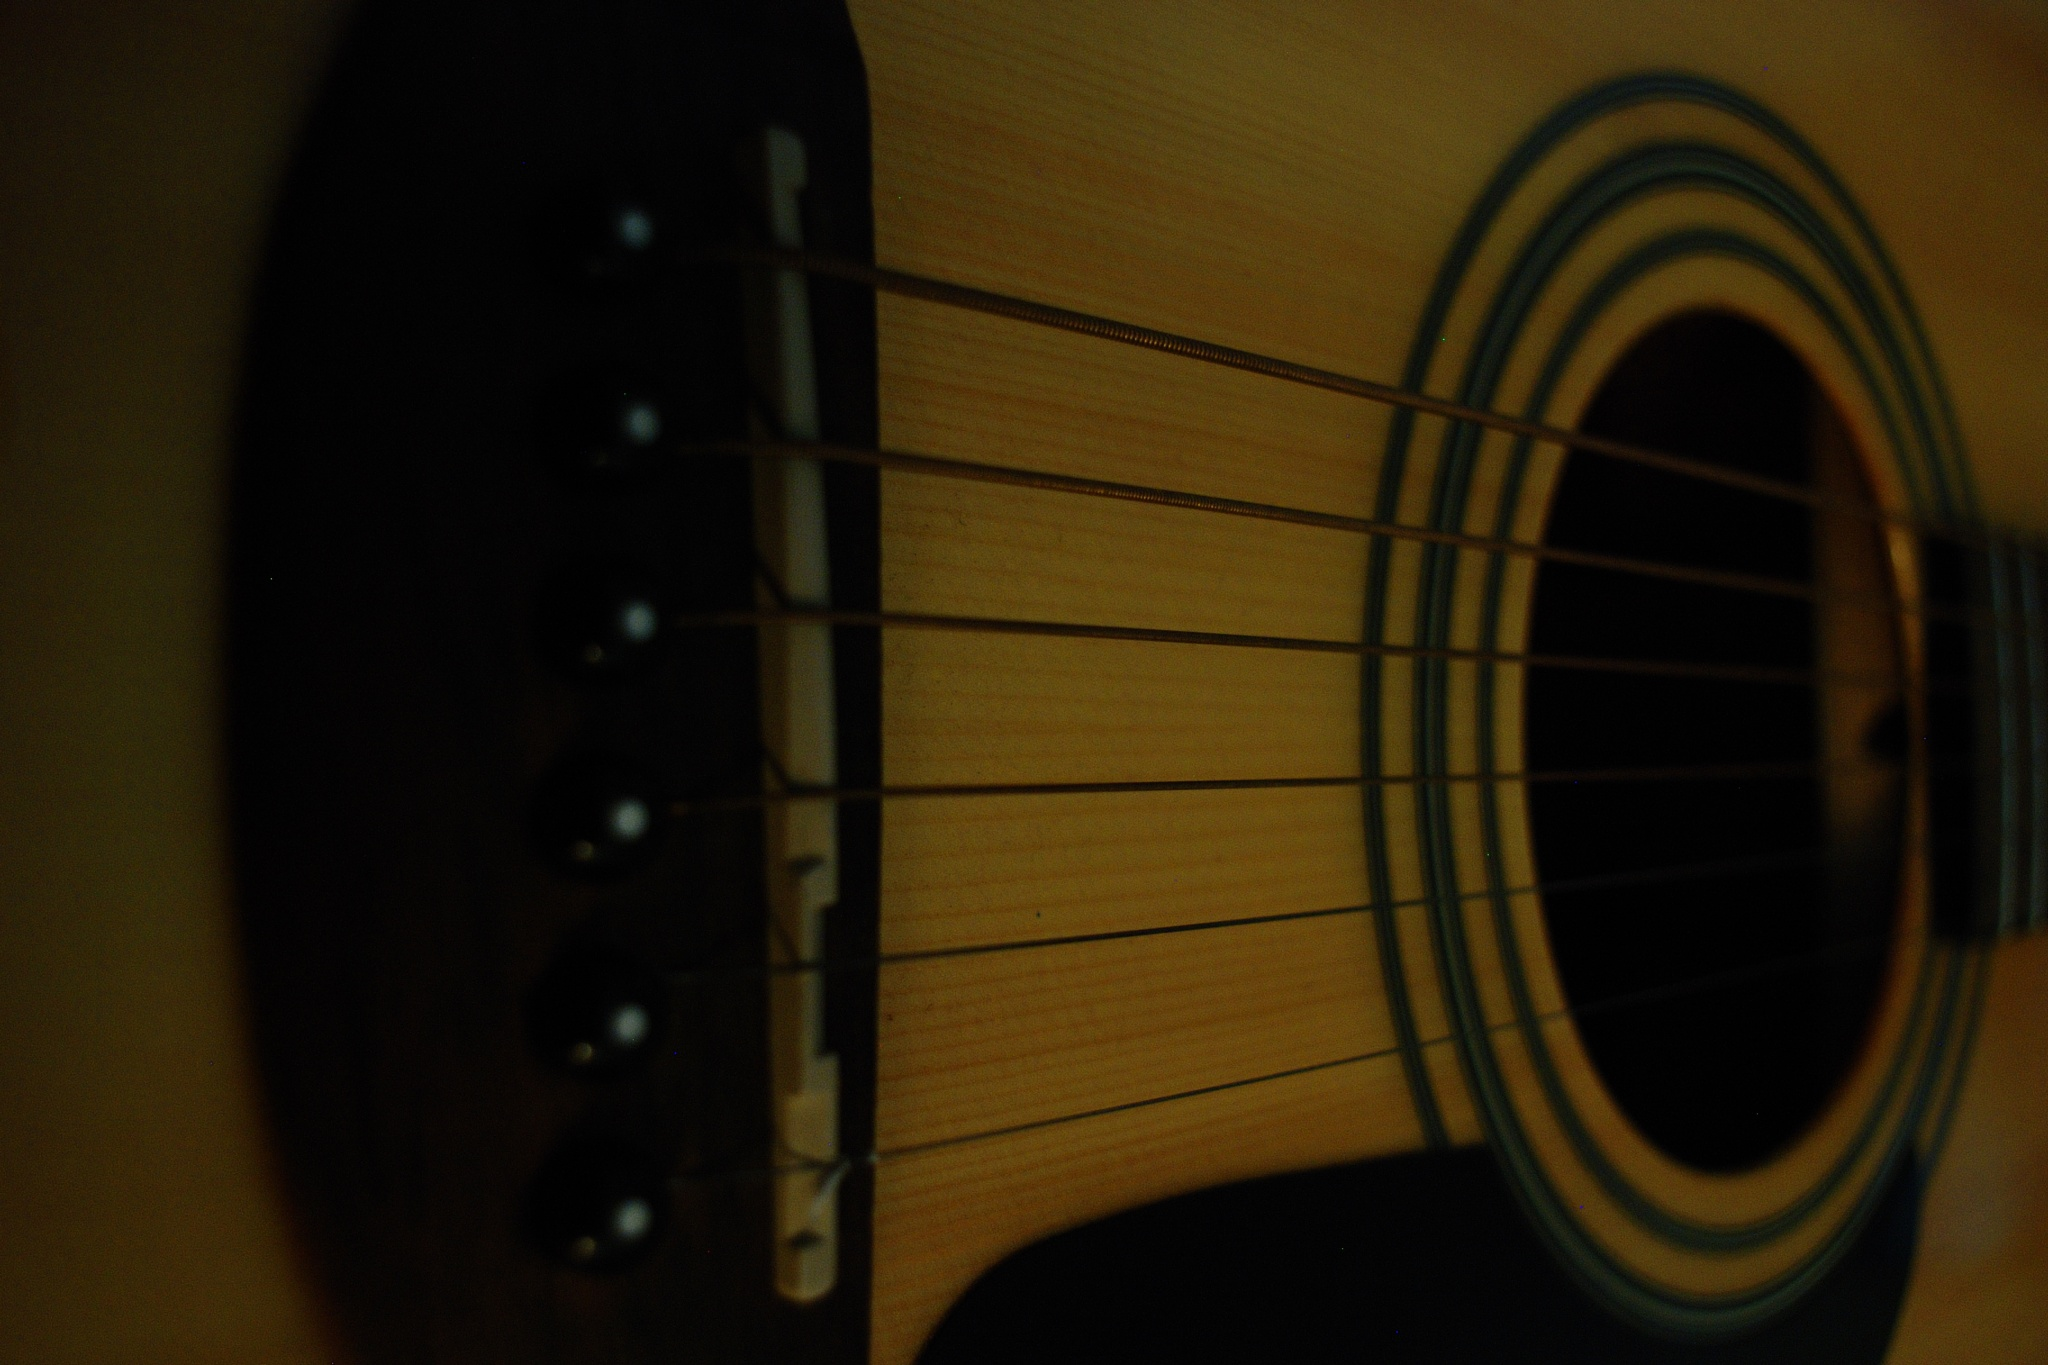 Acoustic 2 by Rogelio Flores